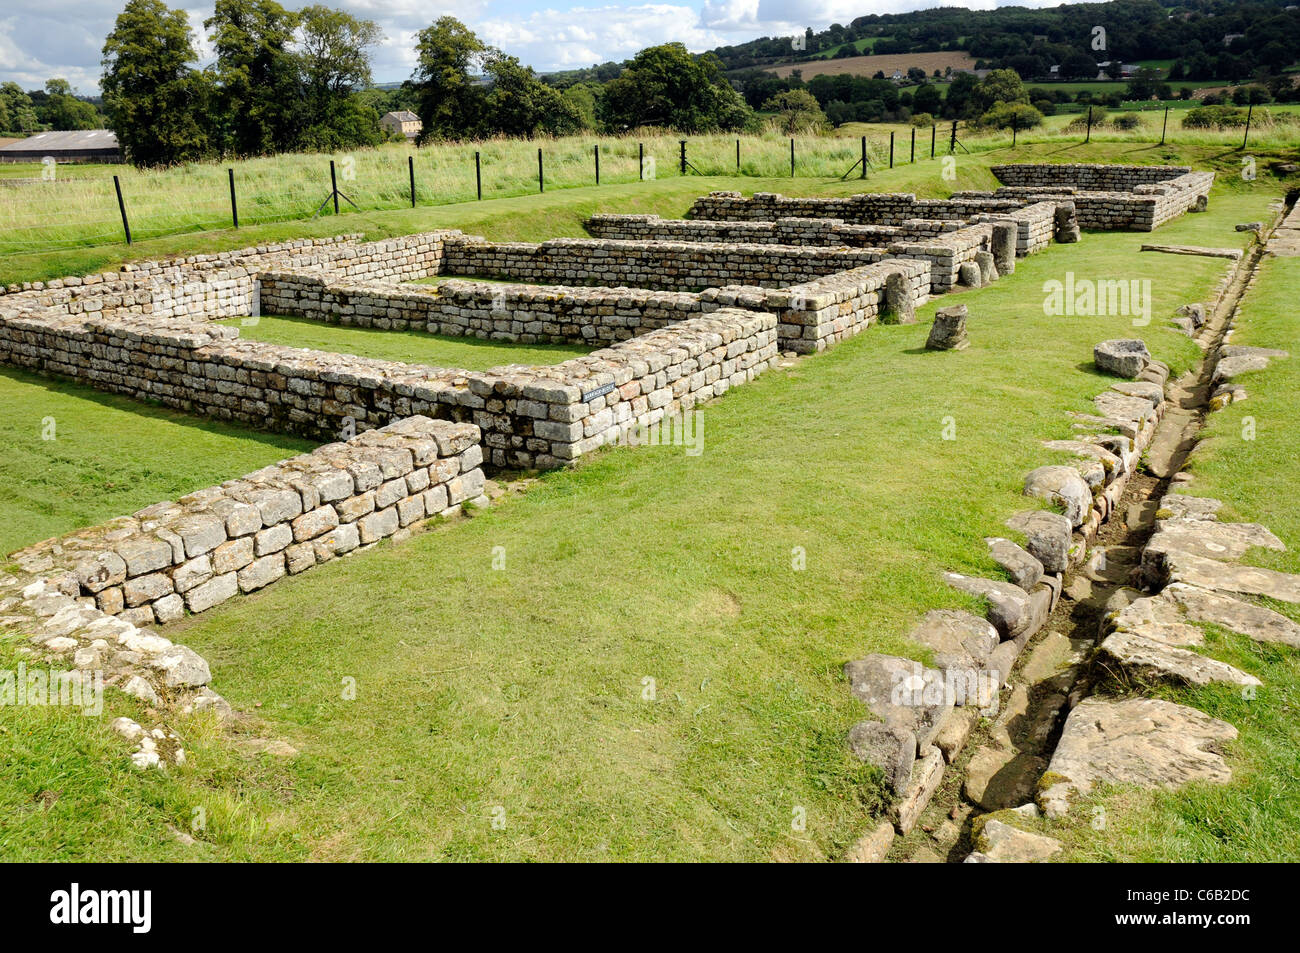 Roman barracks (ruins) at Chesters Fort, on Hadrian's Wall, England. - Stock Image